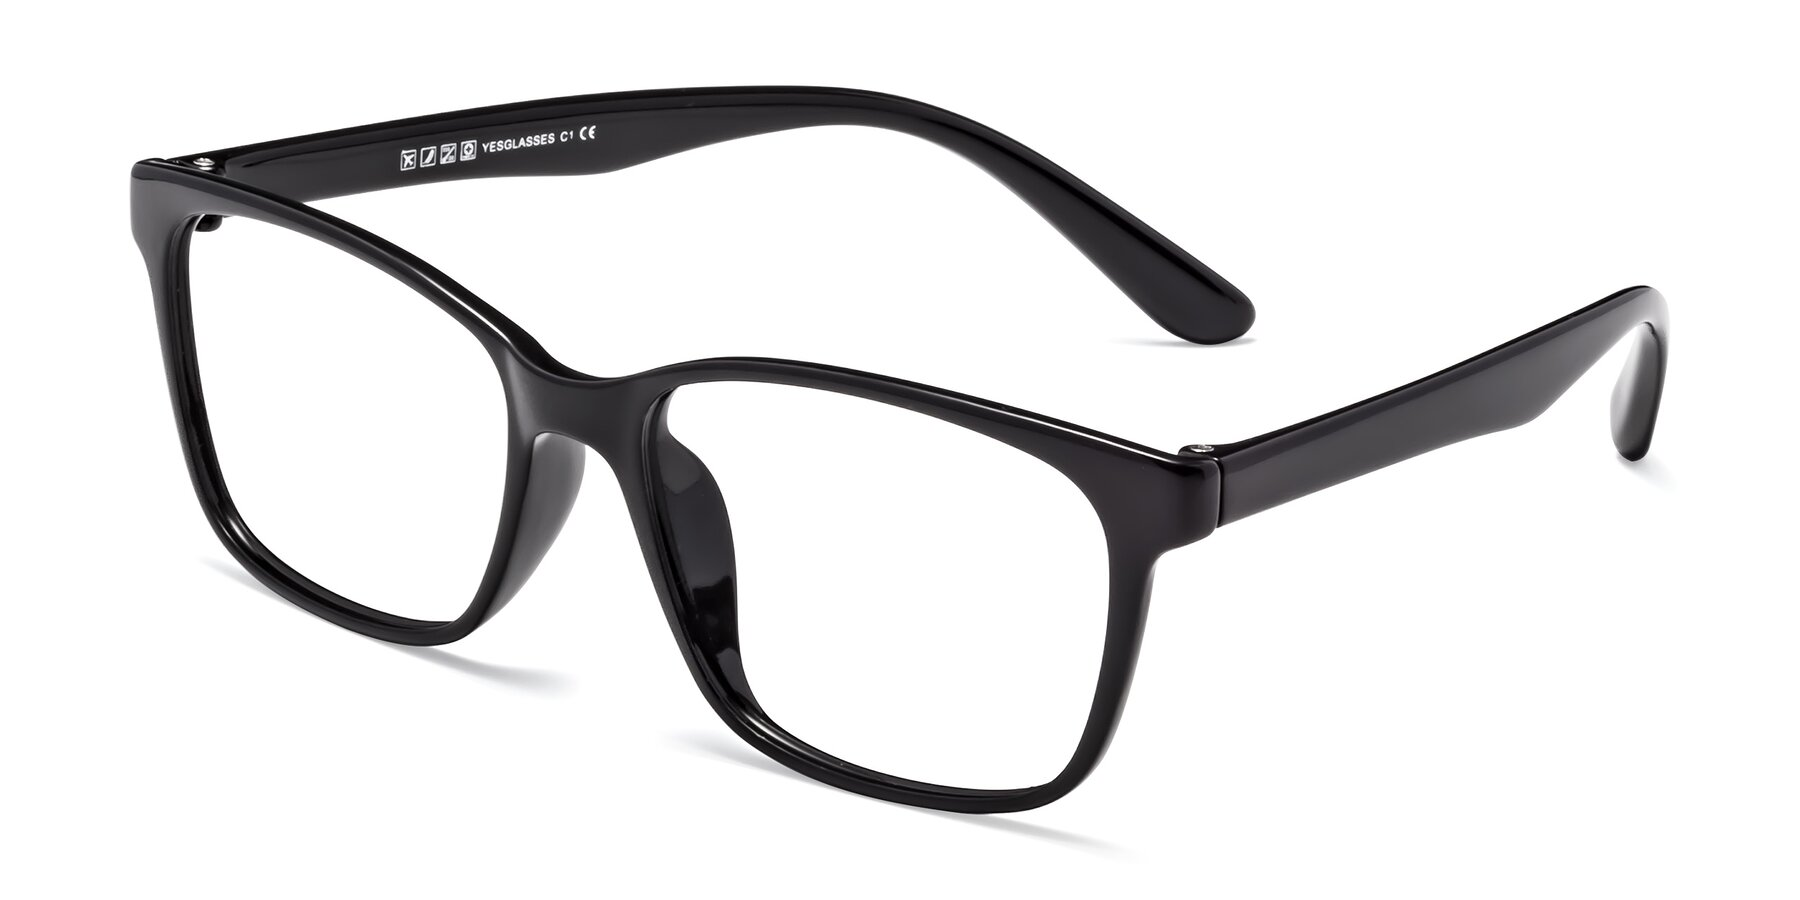 Angle of 8206 in Black with Clear Eyeglass Lenses